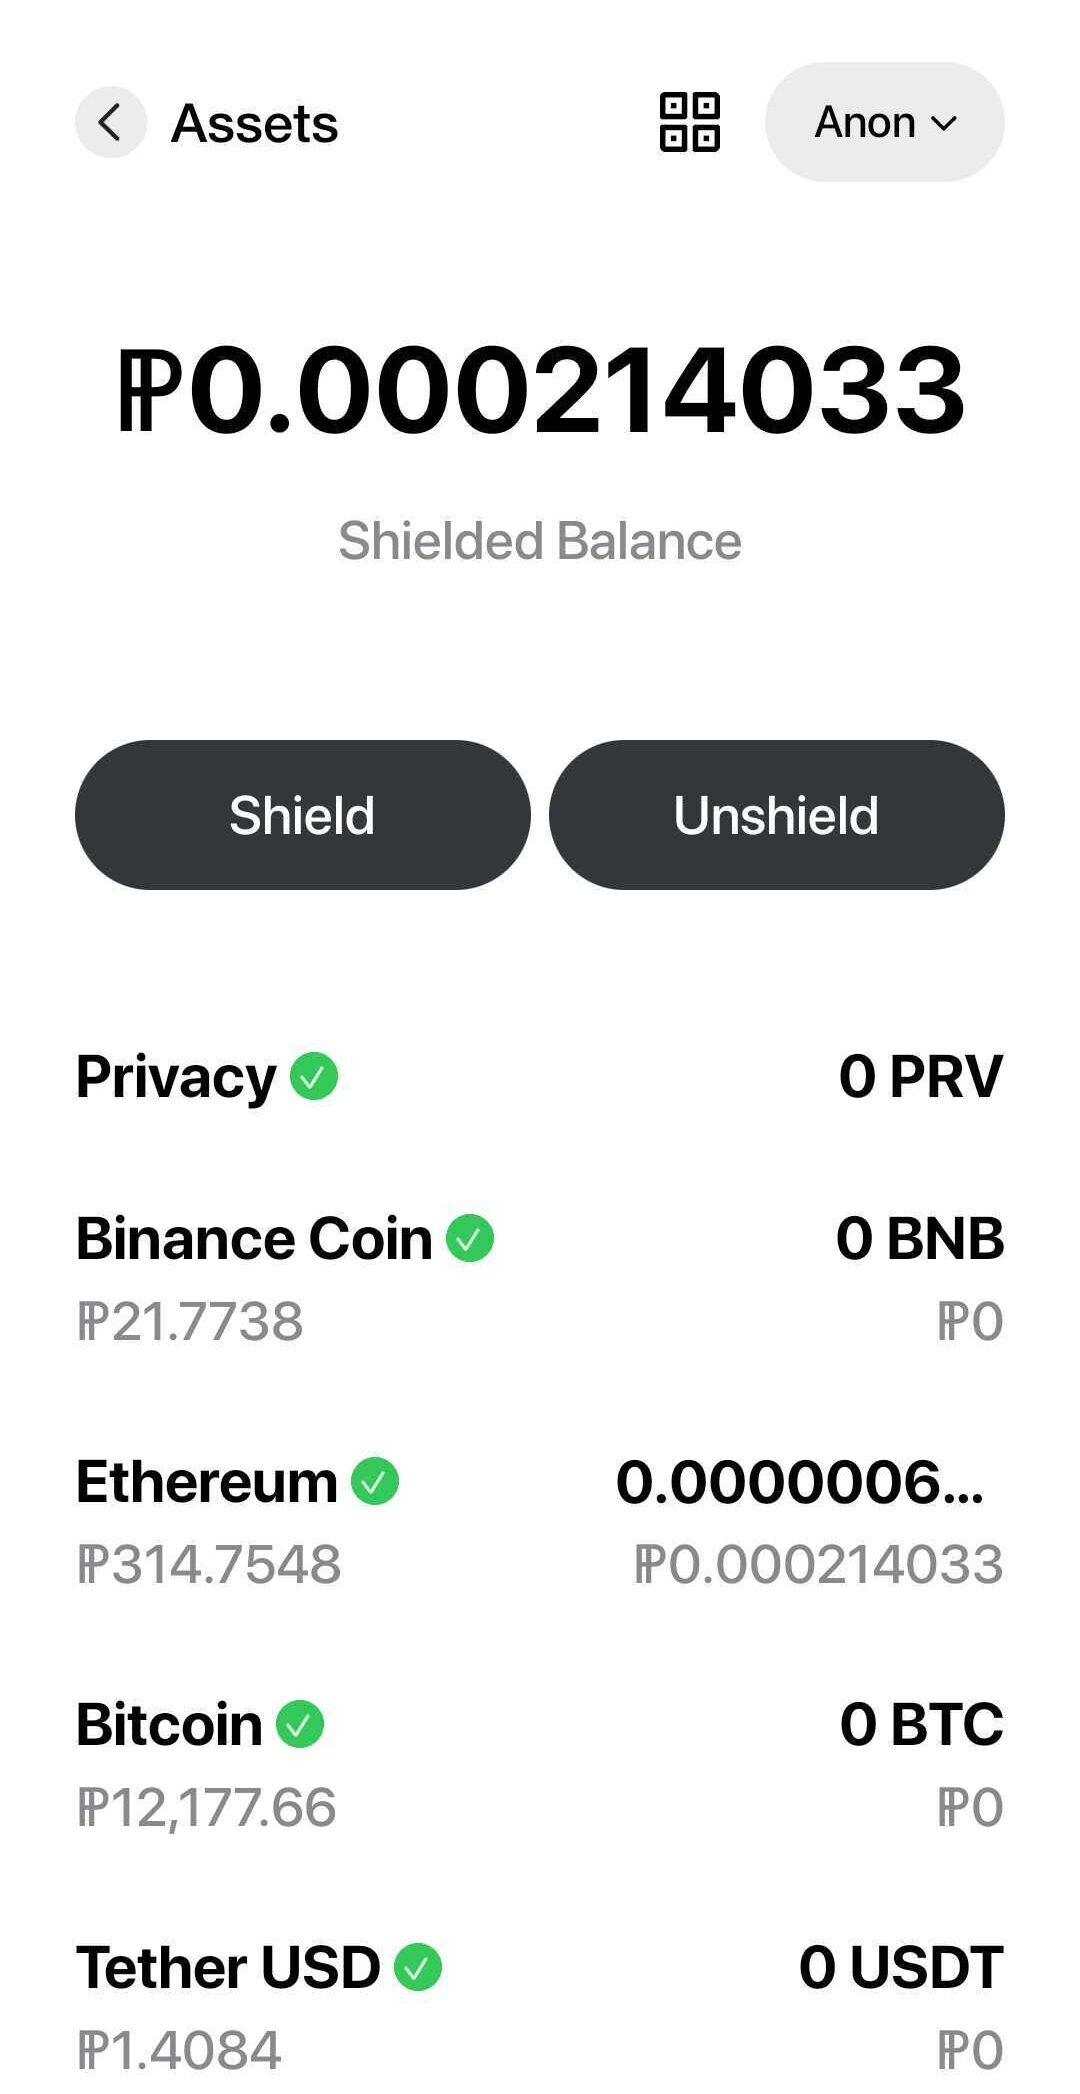 The assets view of the app